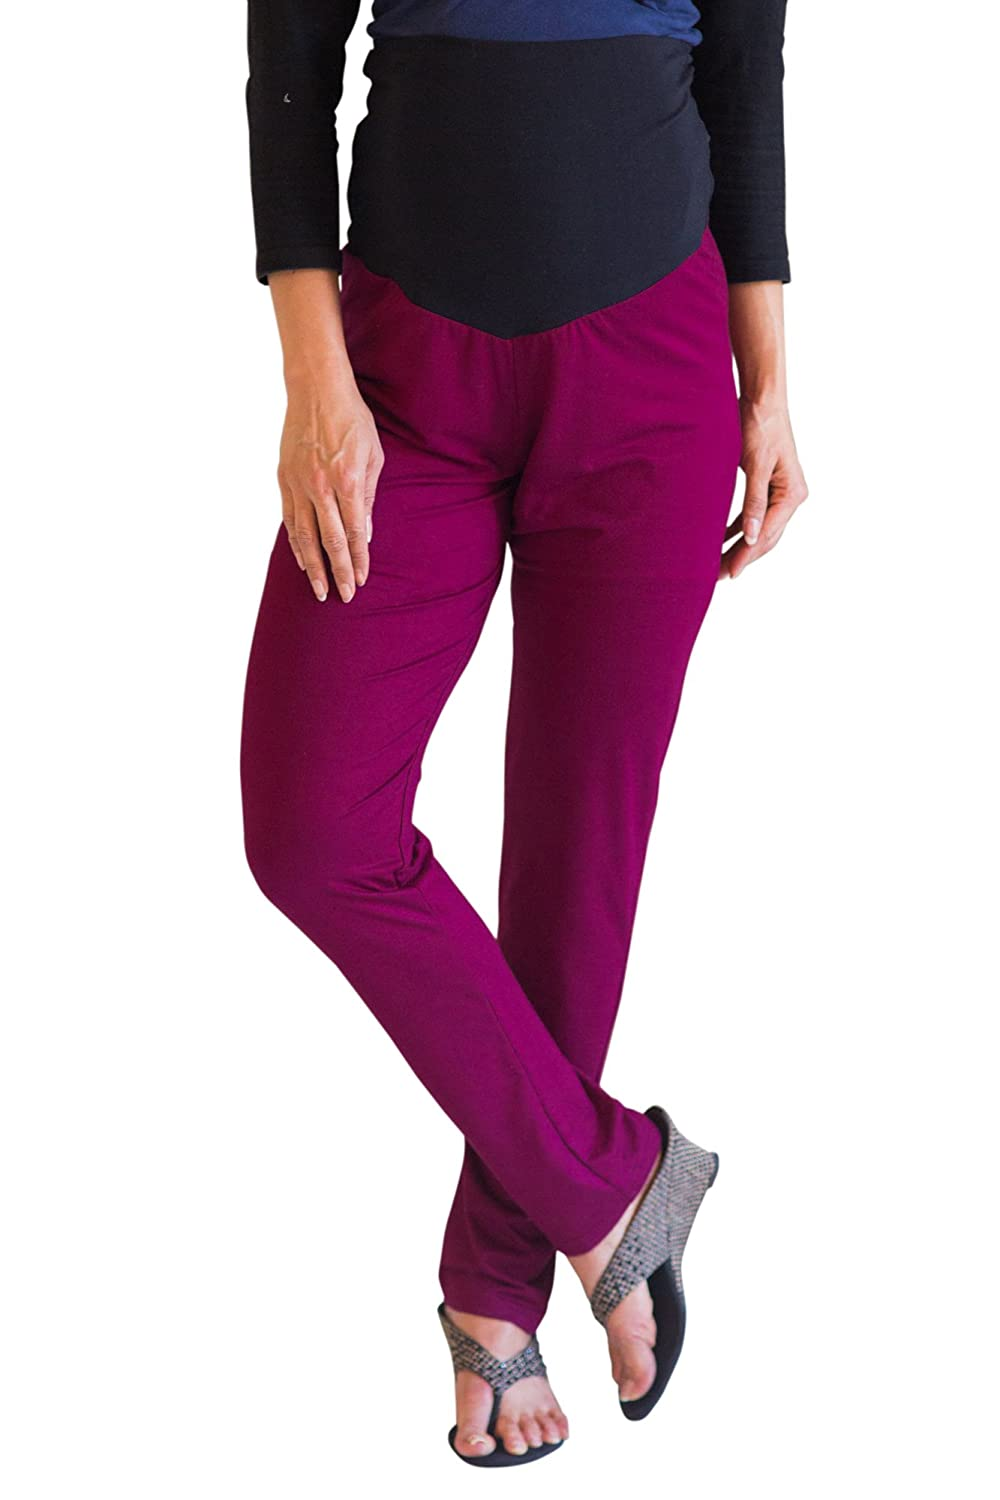 faf64d00e8765 Momzjoy Burgundy Over Bump Maternity Leggings: Amazon.in: Clothing &  Accessories